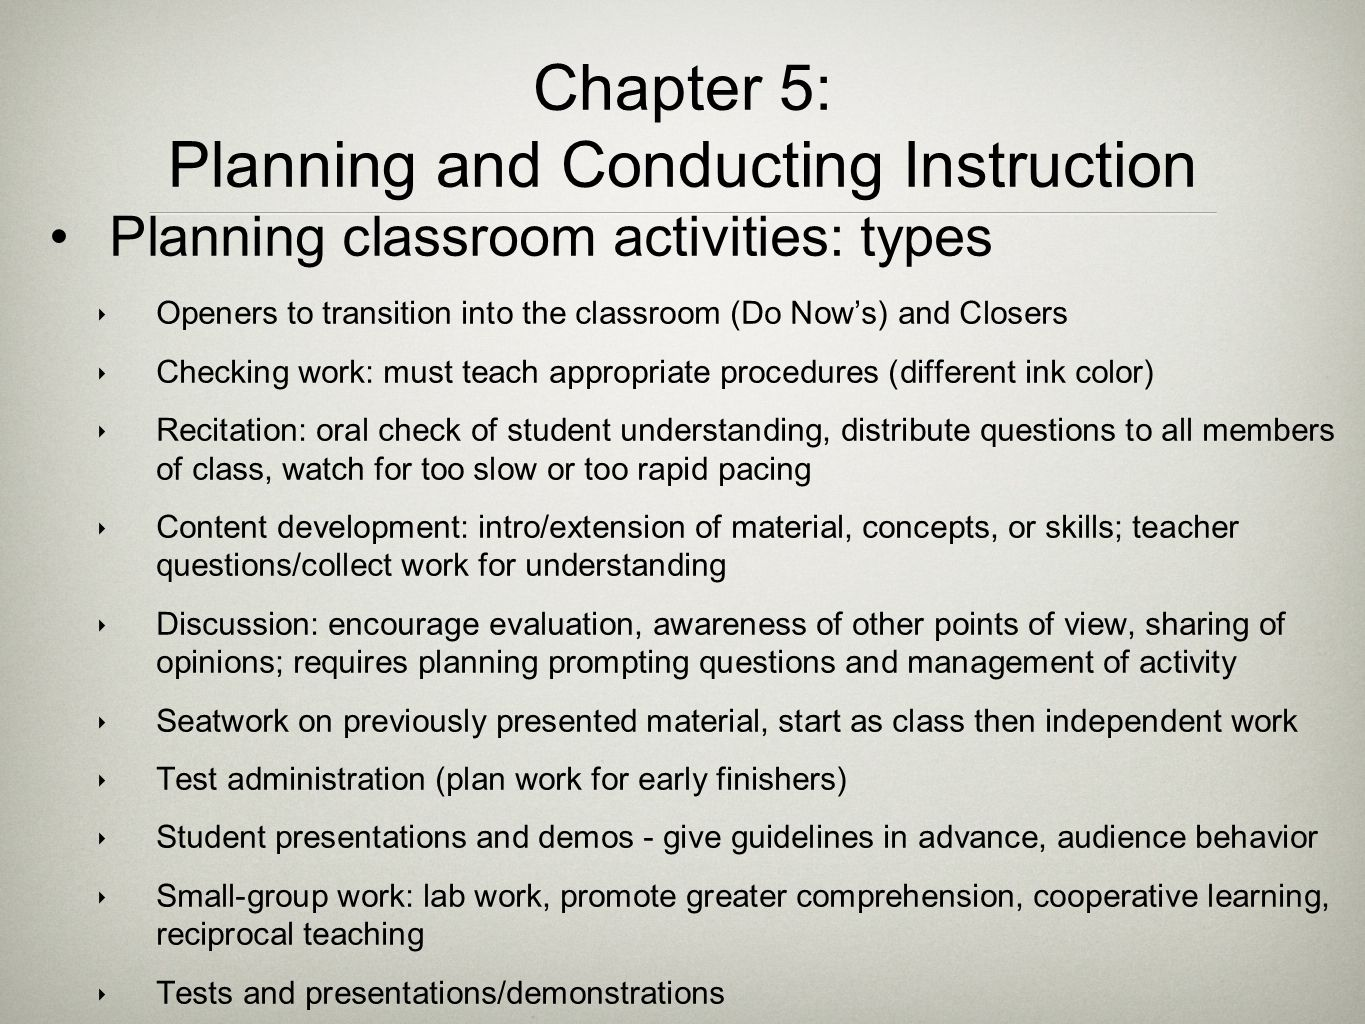 Chapter 5: Planning and Conducting Instruction